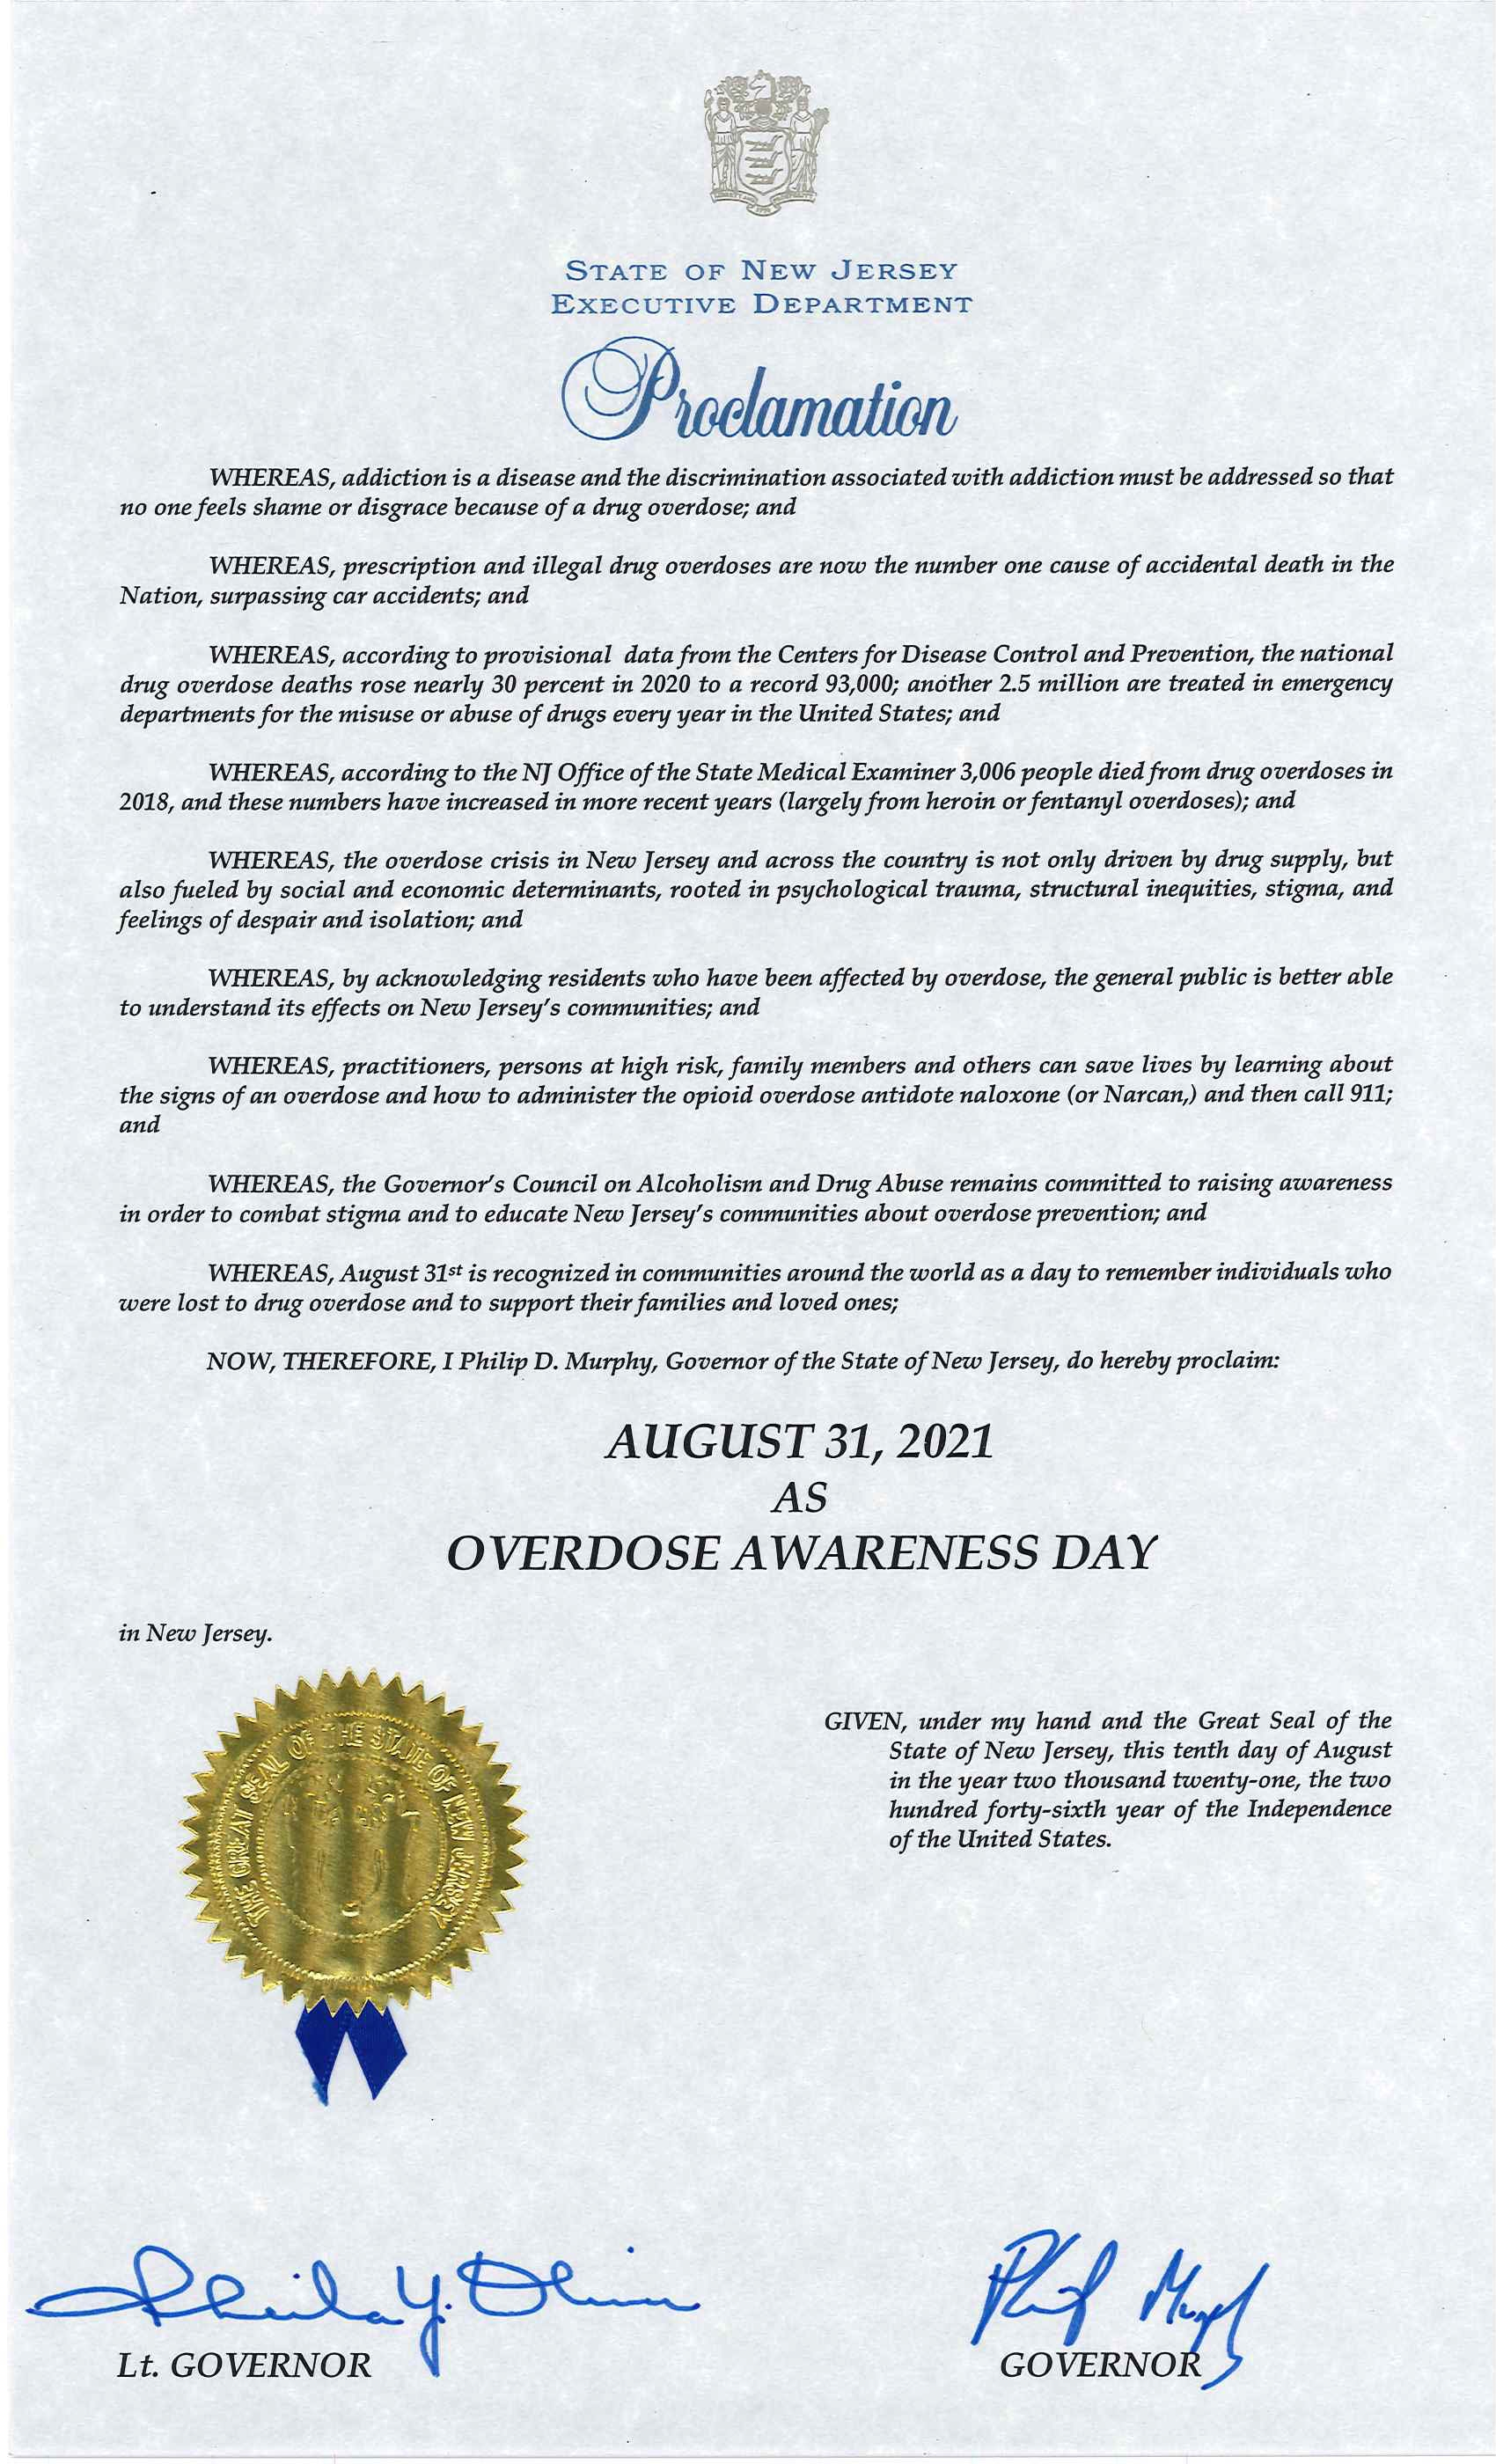 A proclamation from Governor Murphy declaring August 31 as Overdose Awareness Day in New Jersey.